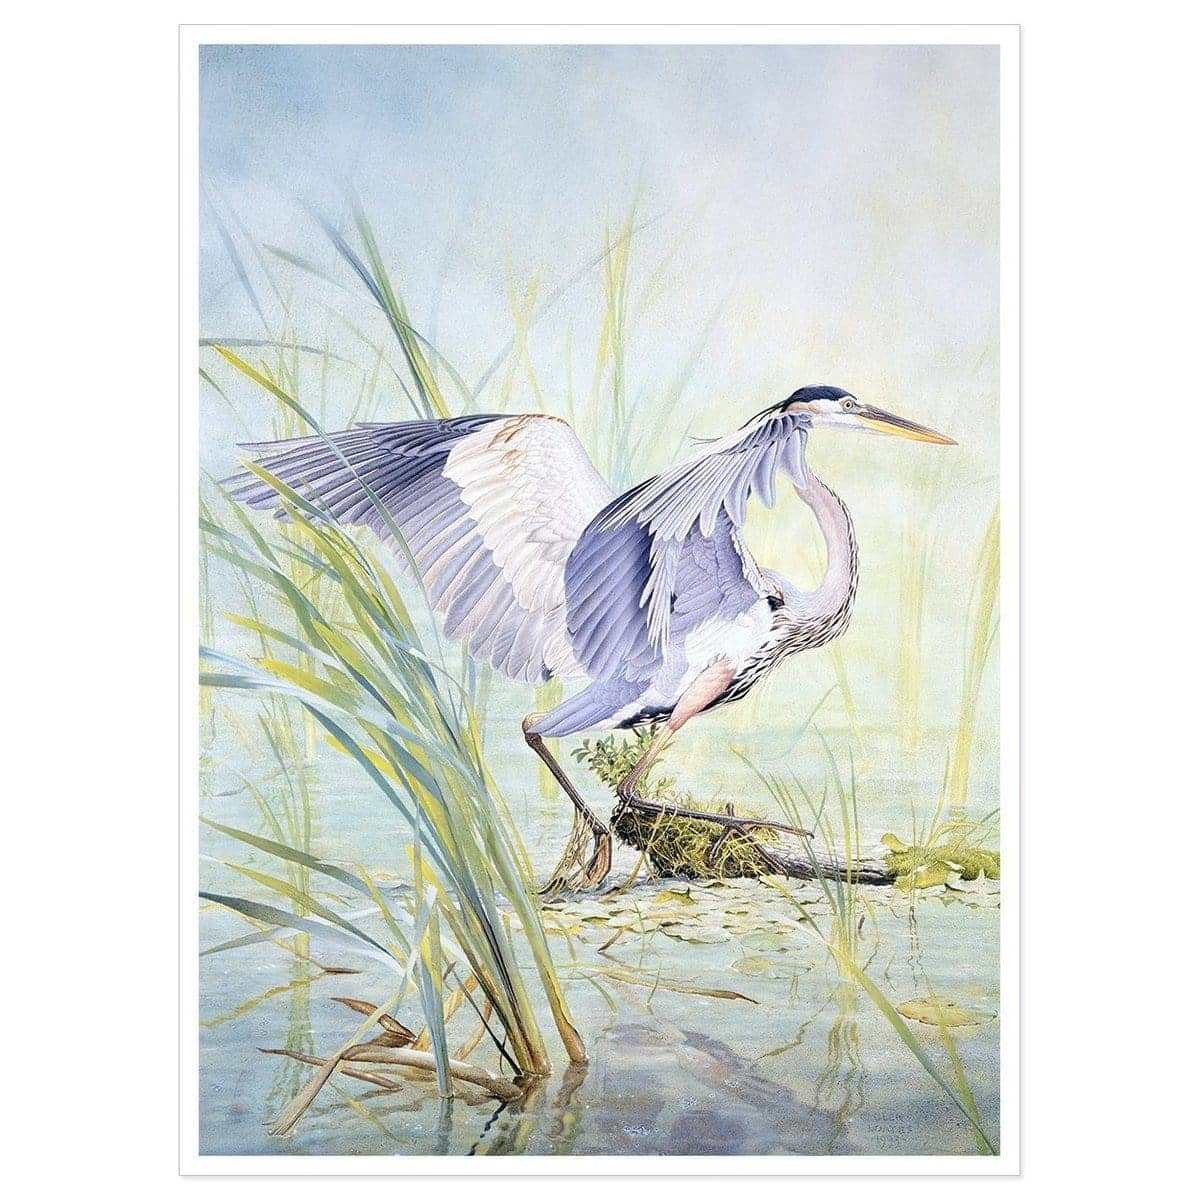 Great Blue Heron - Art Print by Glen Loates from the Glen Loates Store